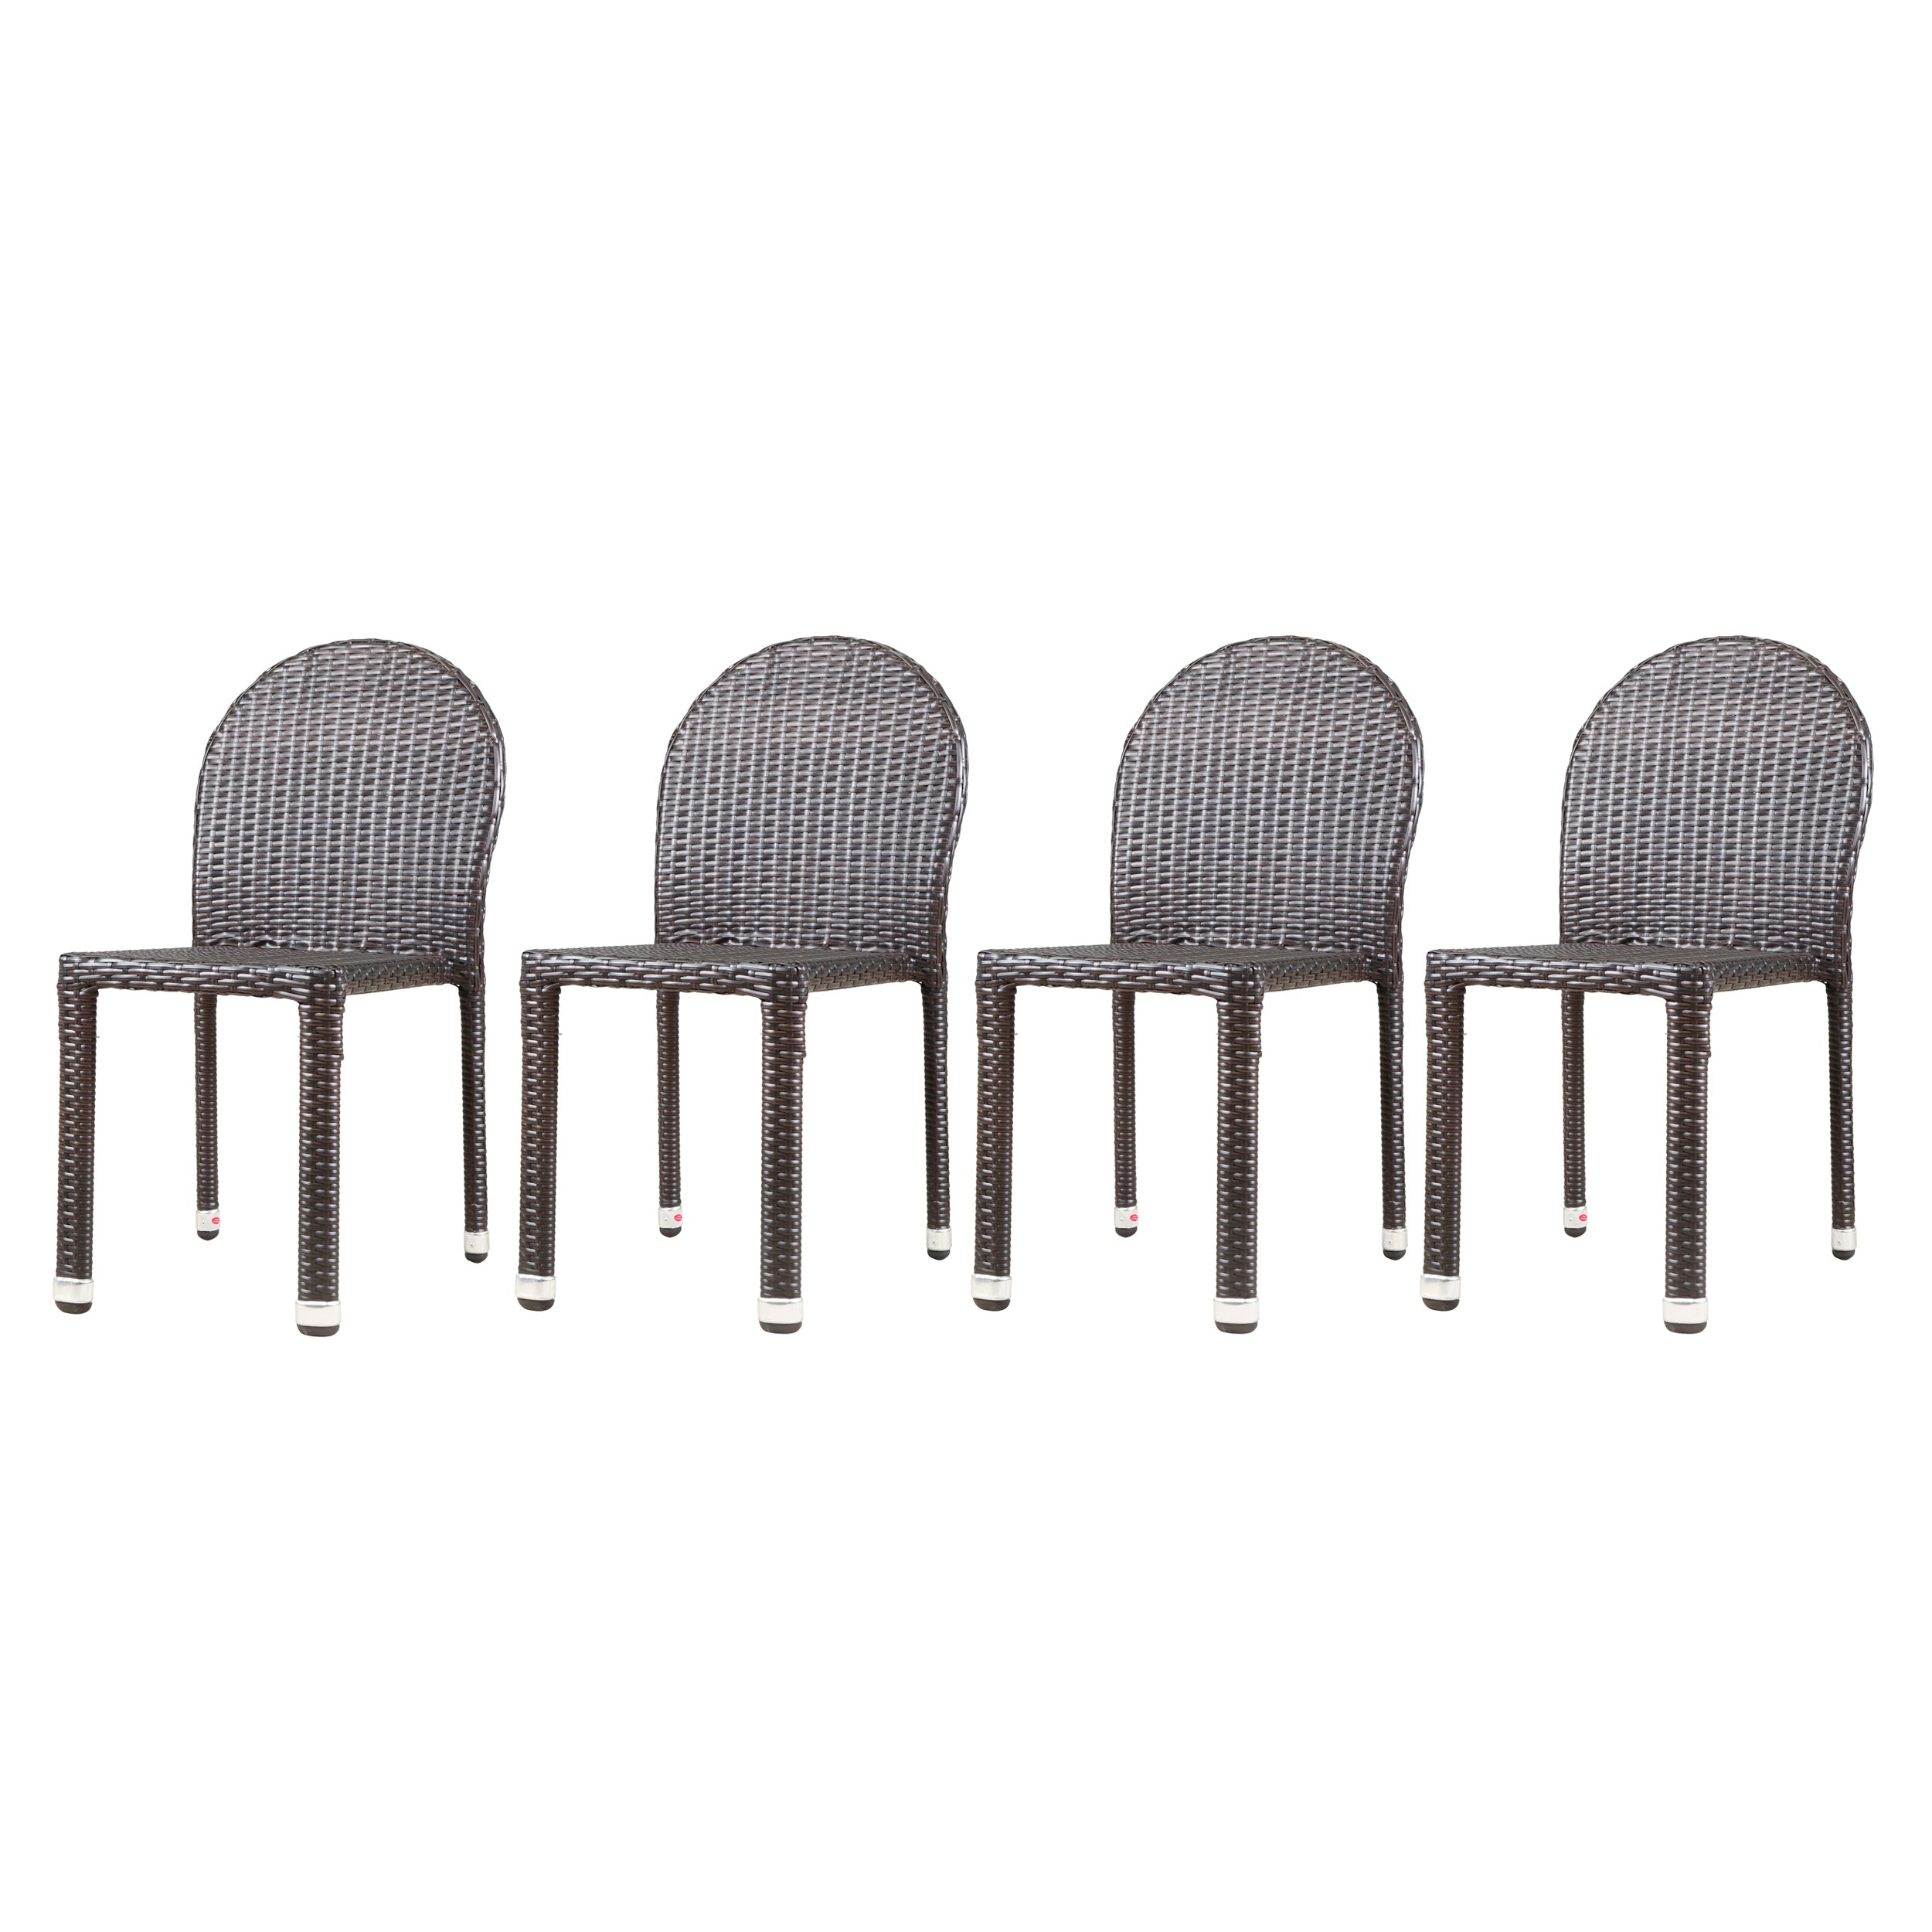 Amallie Outdoor Wicker Stacking Chairs with an Aluminum Frame Set of 4